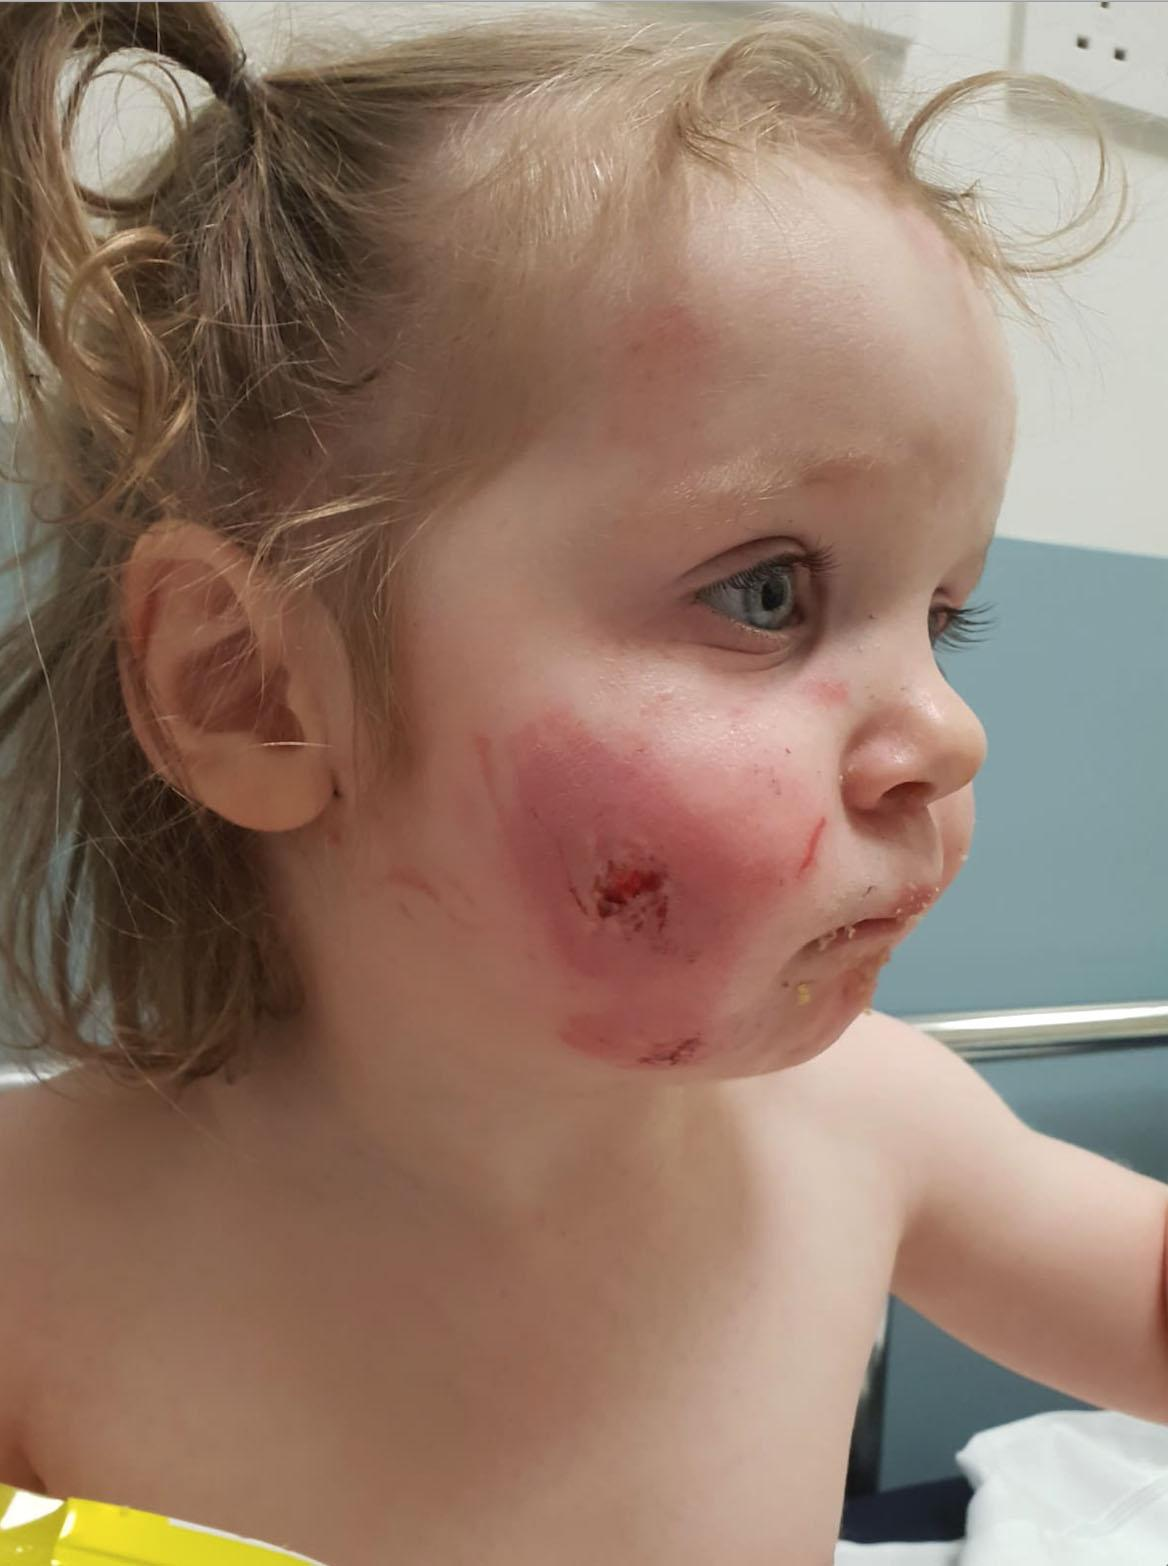 Toddler Fake Babies Toddler Is Scarred For Life After Children Bite Her 15 Times